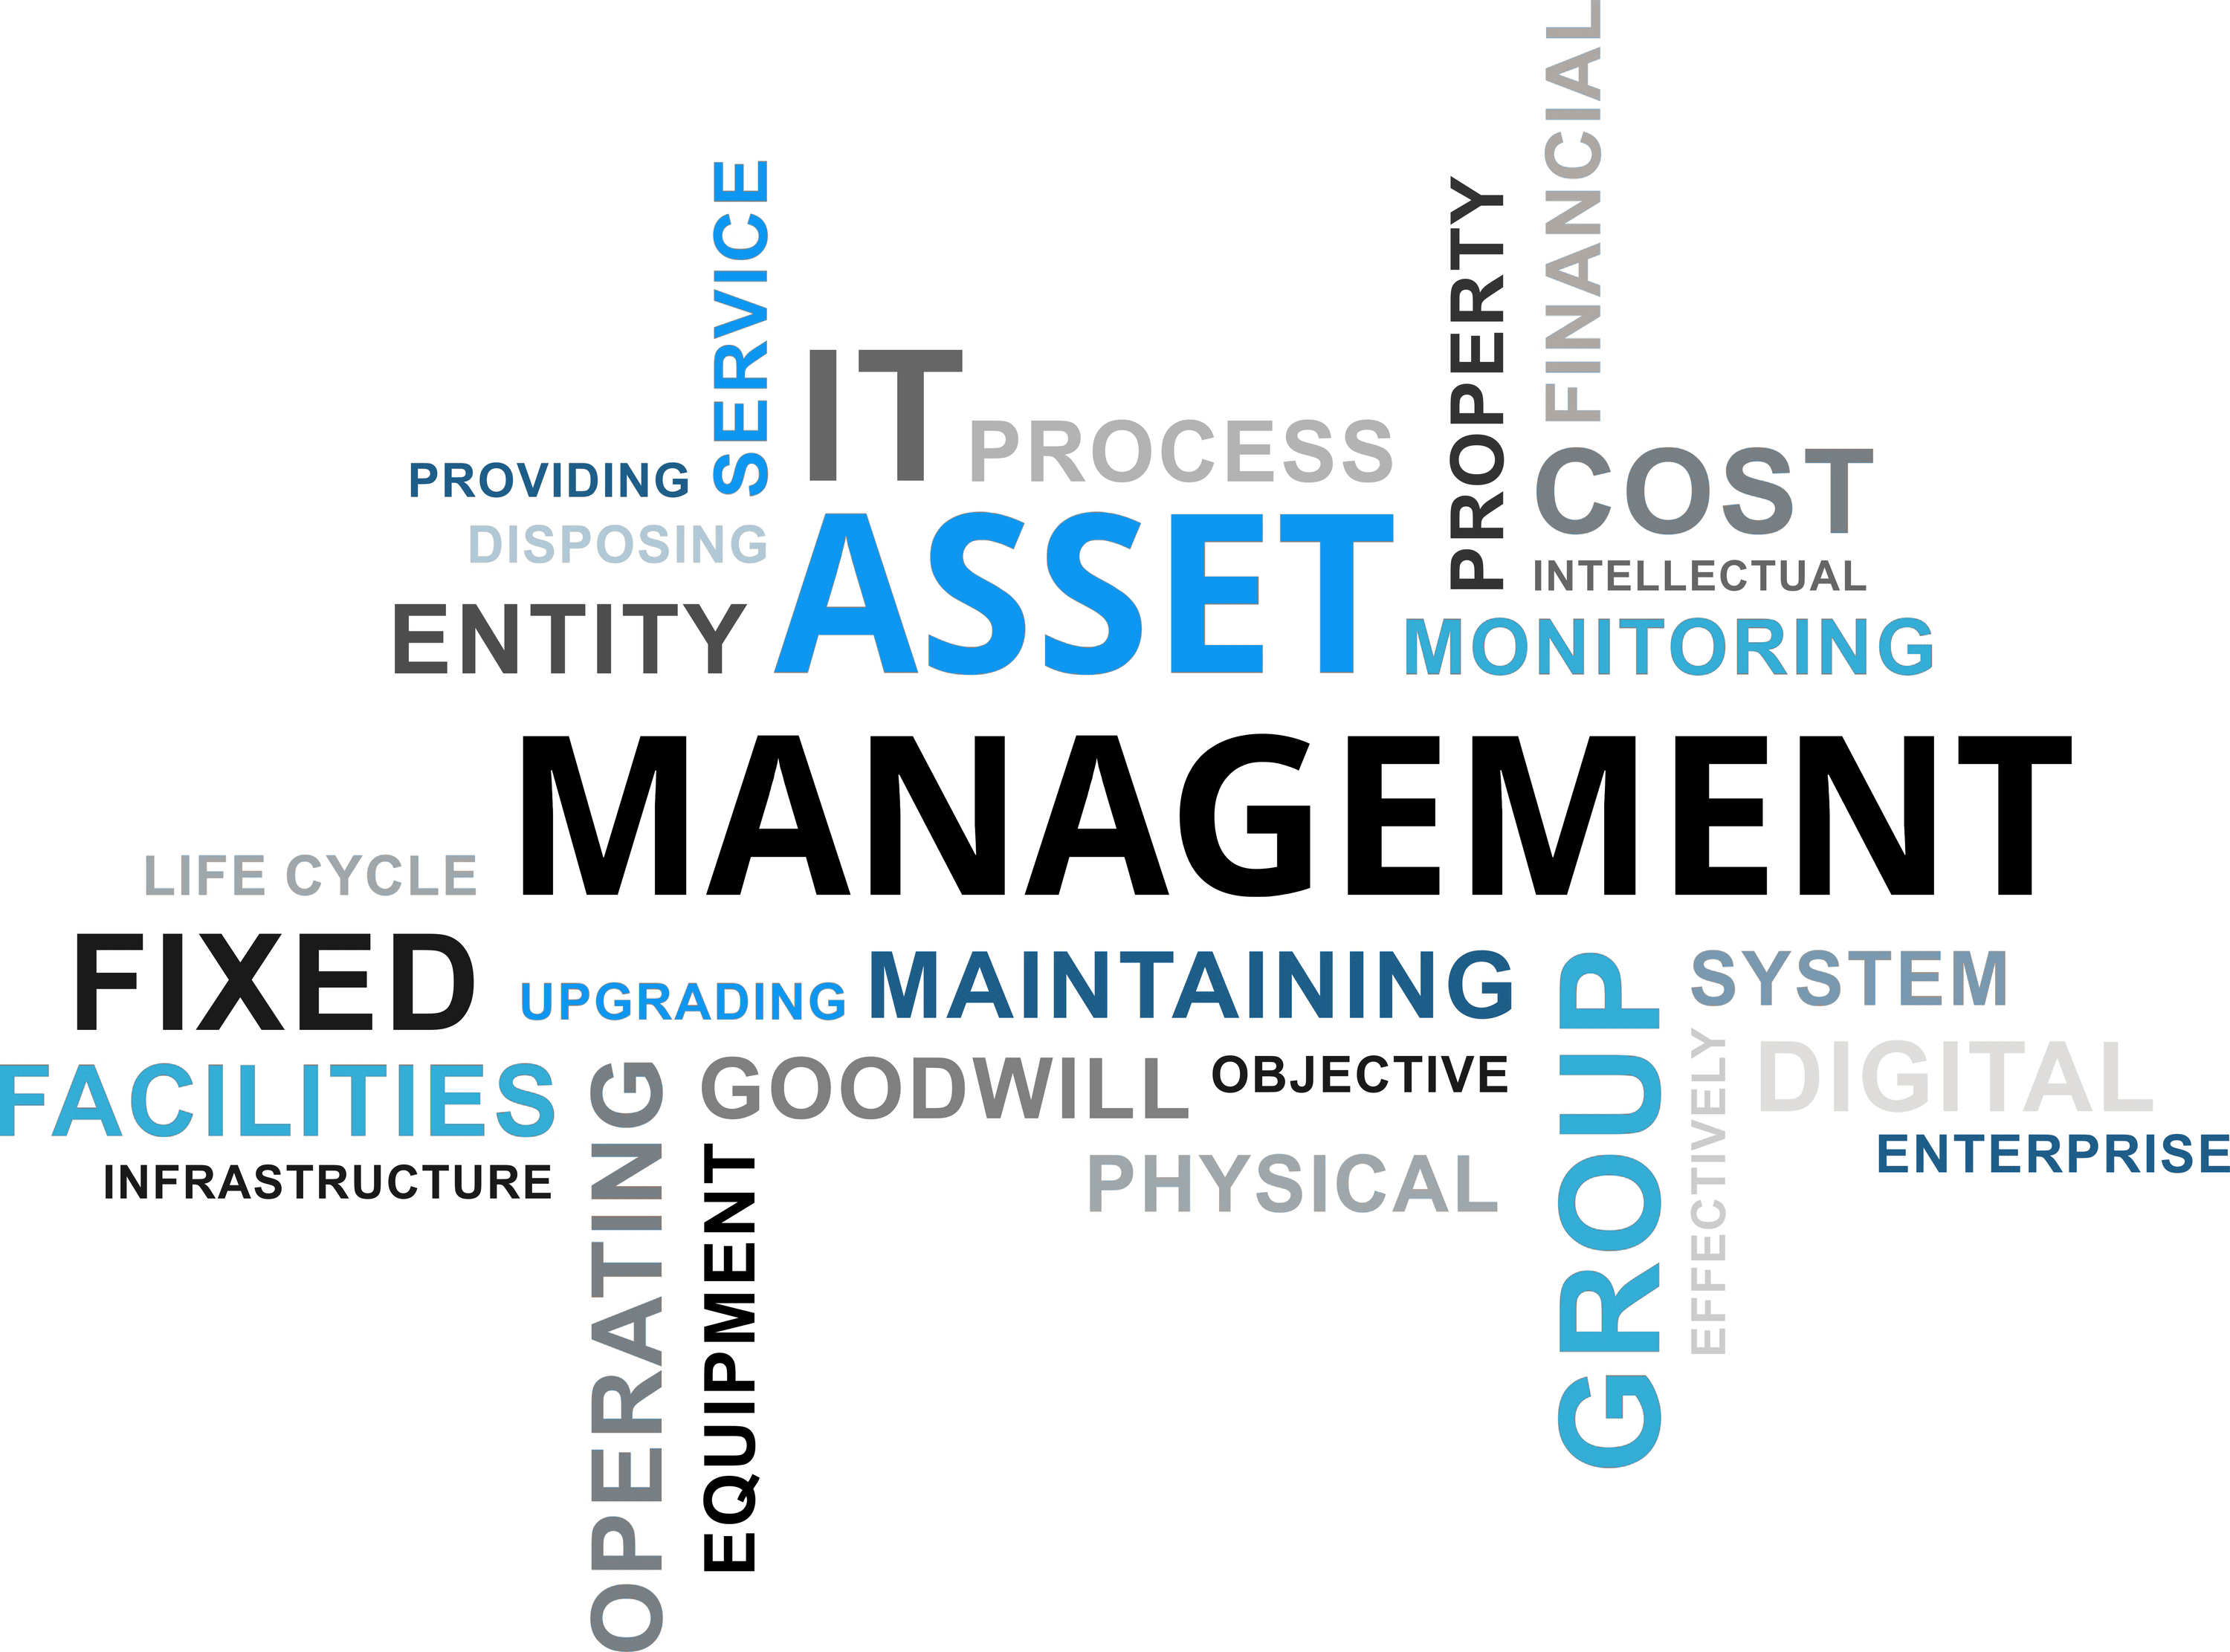 SAP S:4 HANA ASSET MANAGEMENT